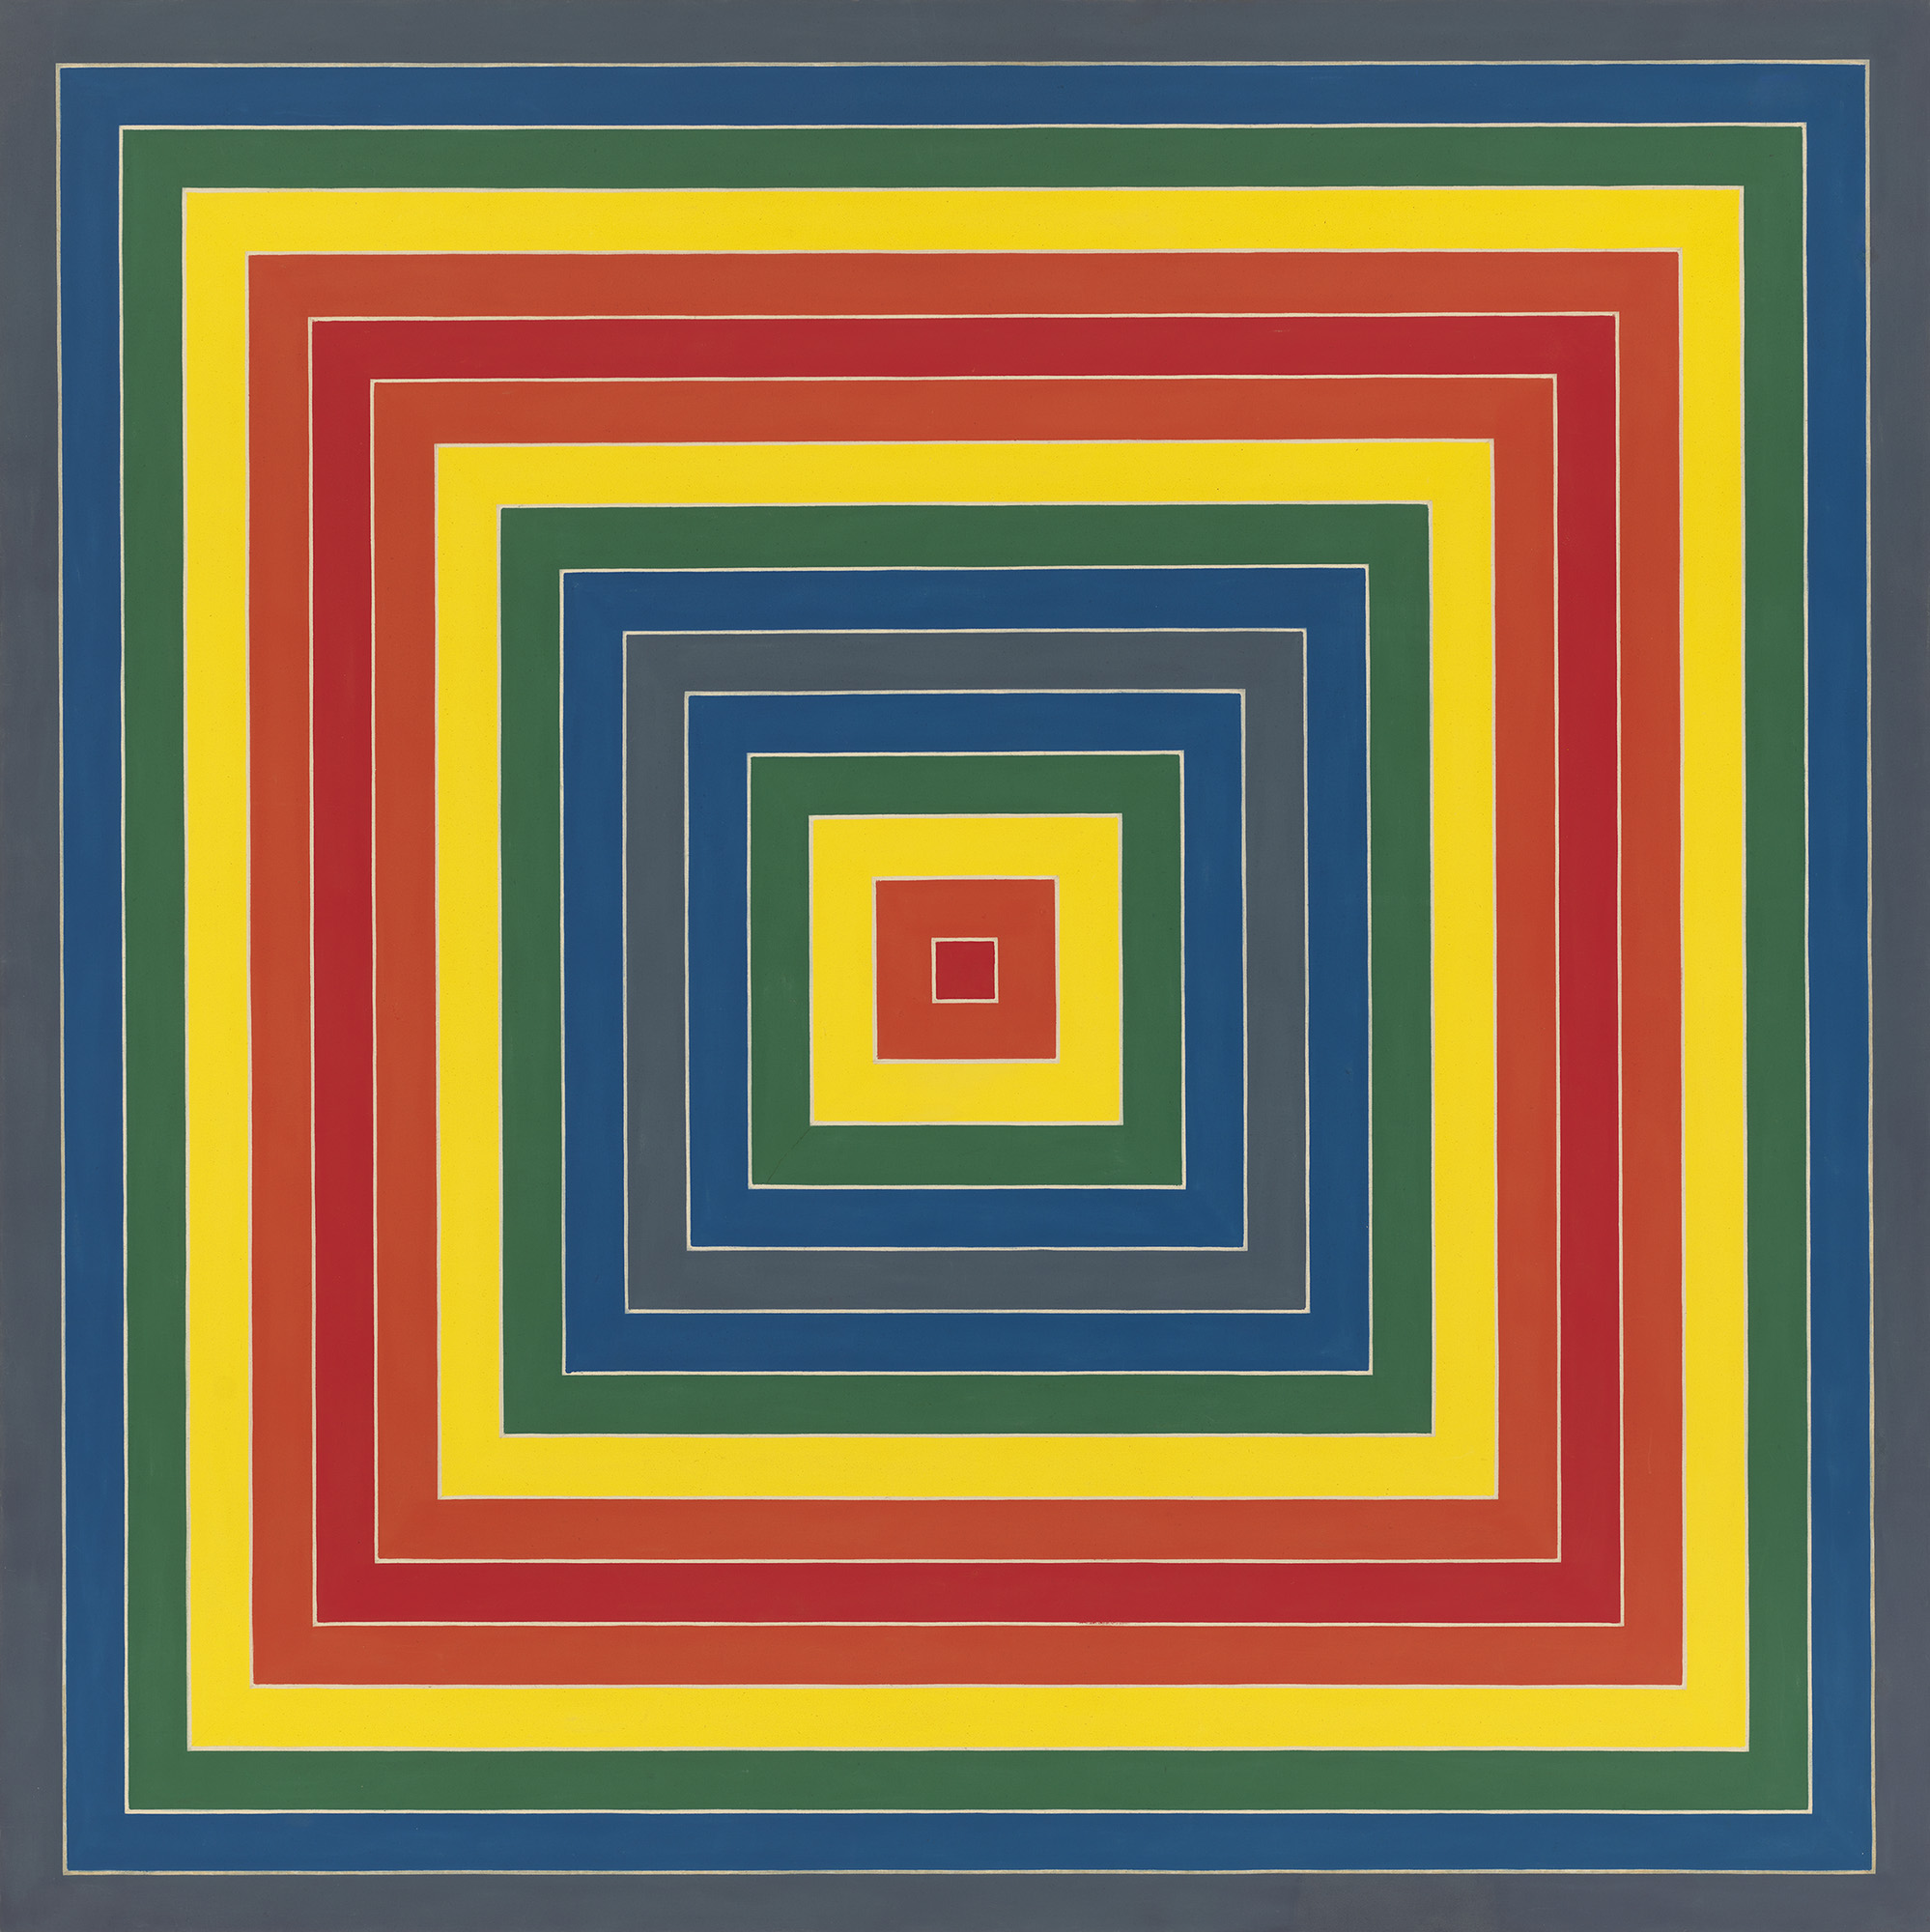 Frank Stella,  Gran Cairo , 1962. Alkyd on canvas, 85 9/16 × 85 9/16 in. (217.3 × 217.3 cm). Whitney Museum of American Art, New York; purchase with funds from the Friends of the Whitney Museum of American Art 63.34. © 2019 Frank Stella/Artists Rights Society (ARS), New York